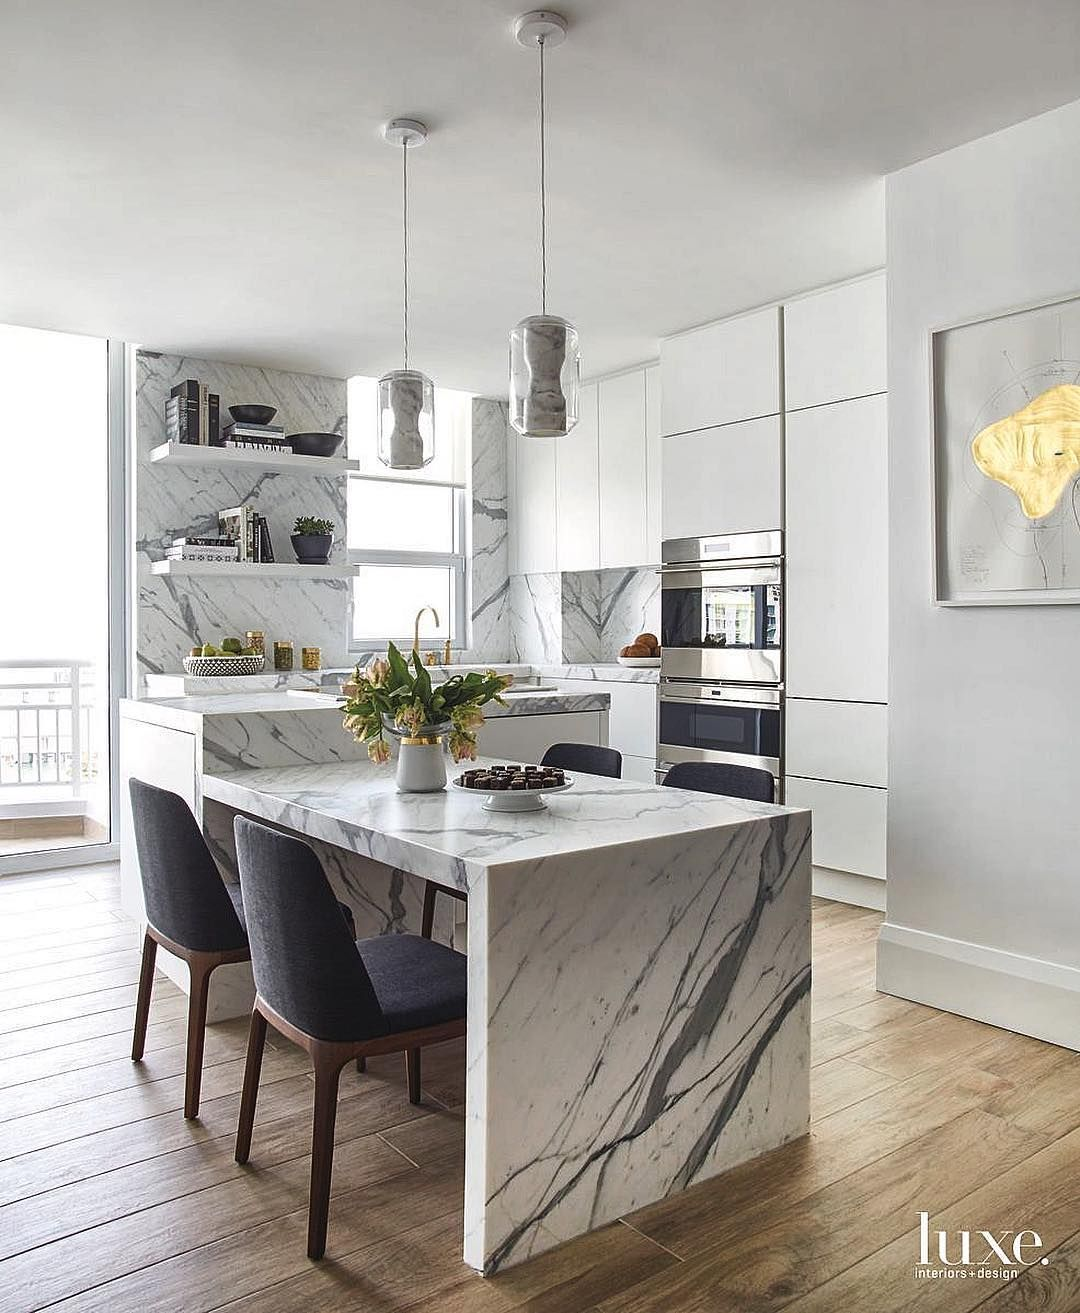 5 033 Likes 52 Comments Luxe Interiors Design Luxemagazine On Instagram Marble Bliss Luxeathom Interior Design Kitchen Kitchen Design Kitchen Units